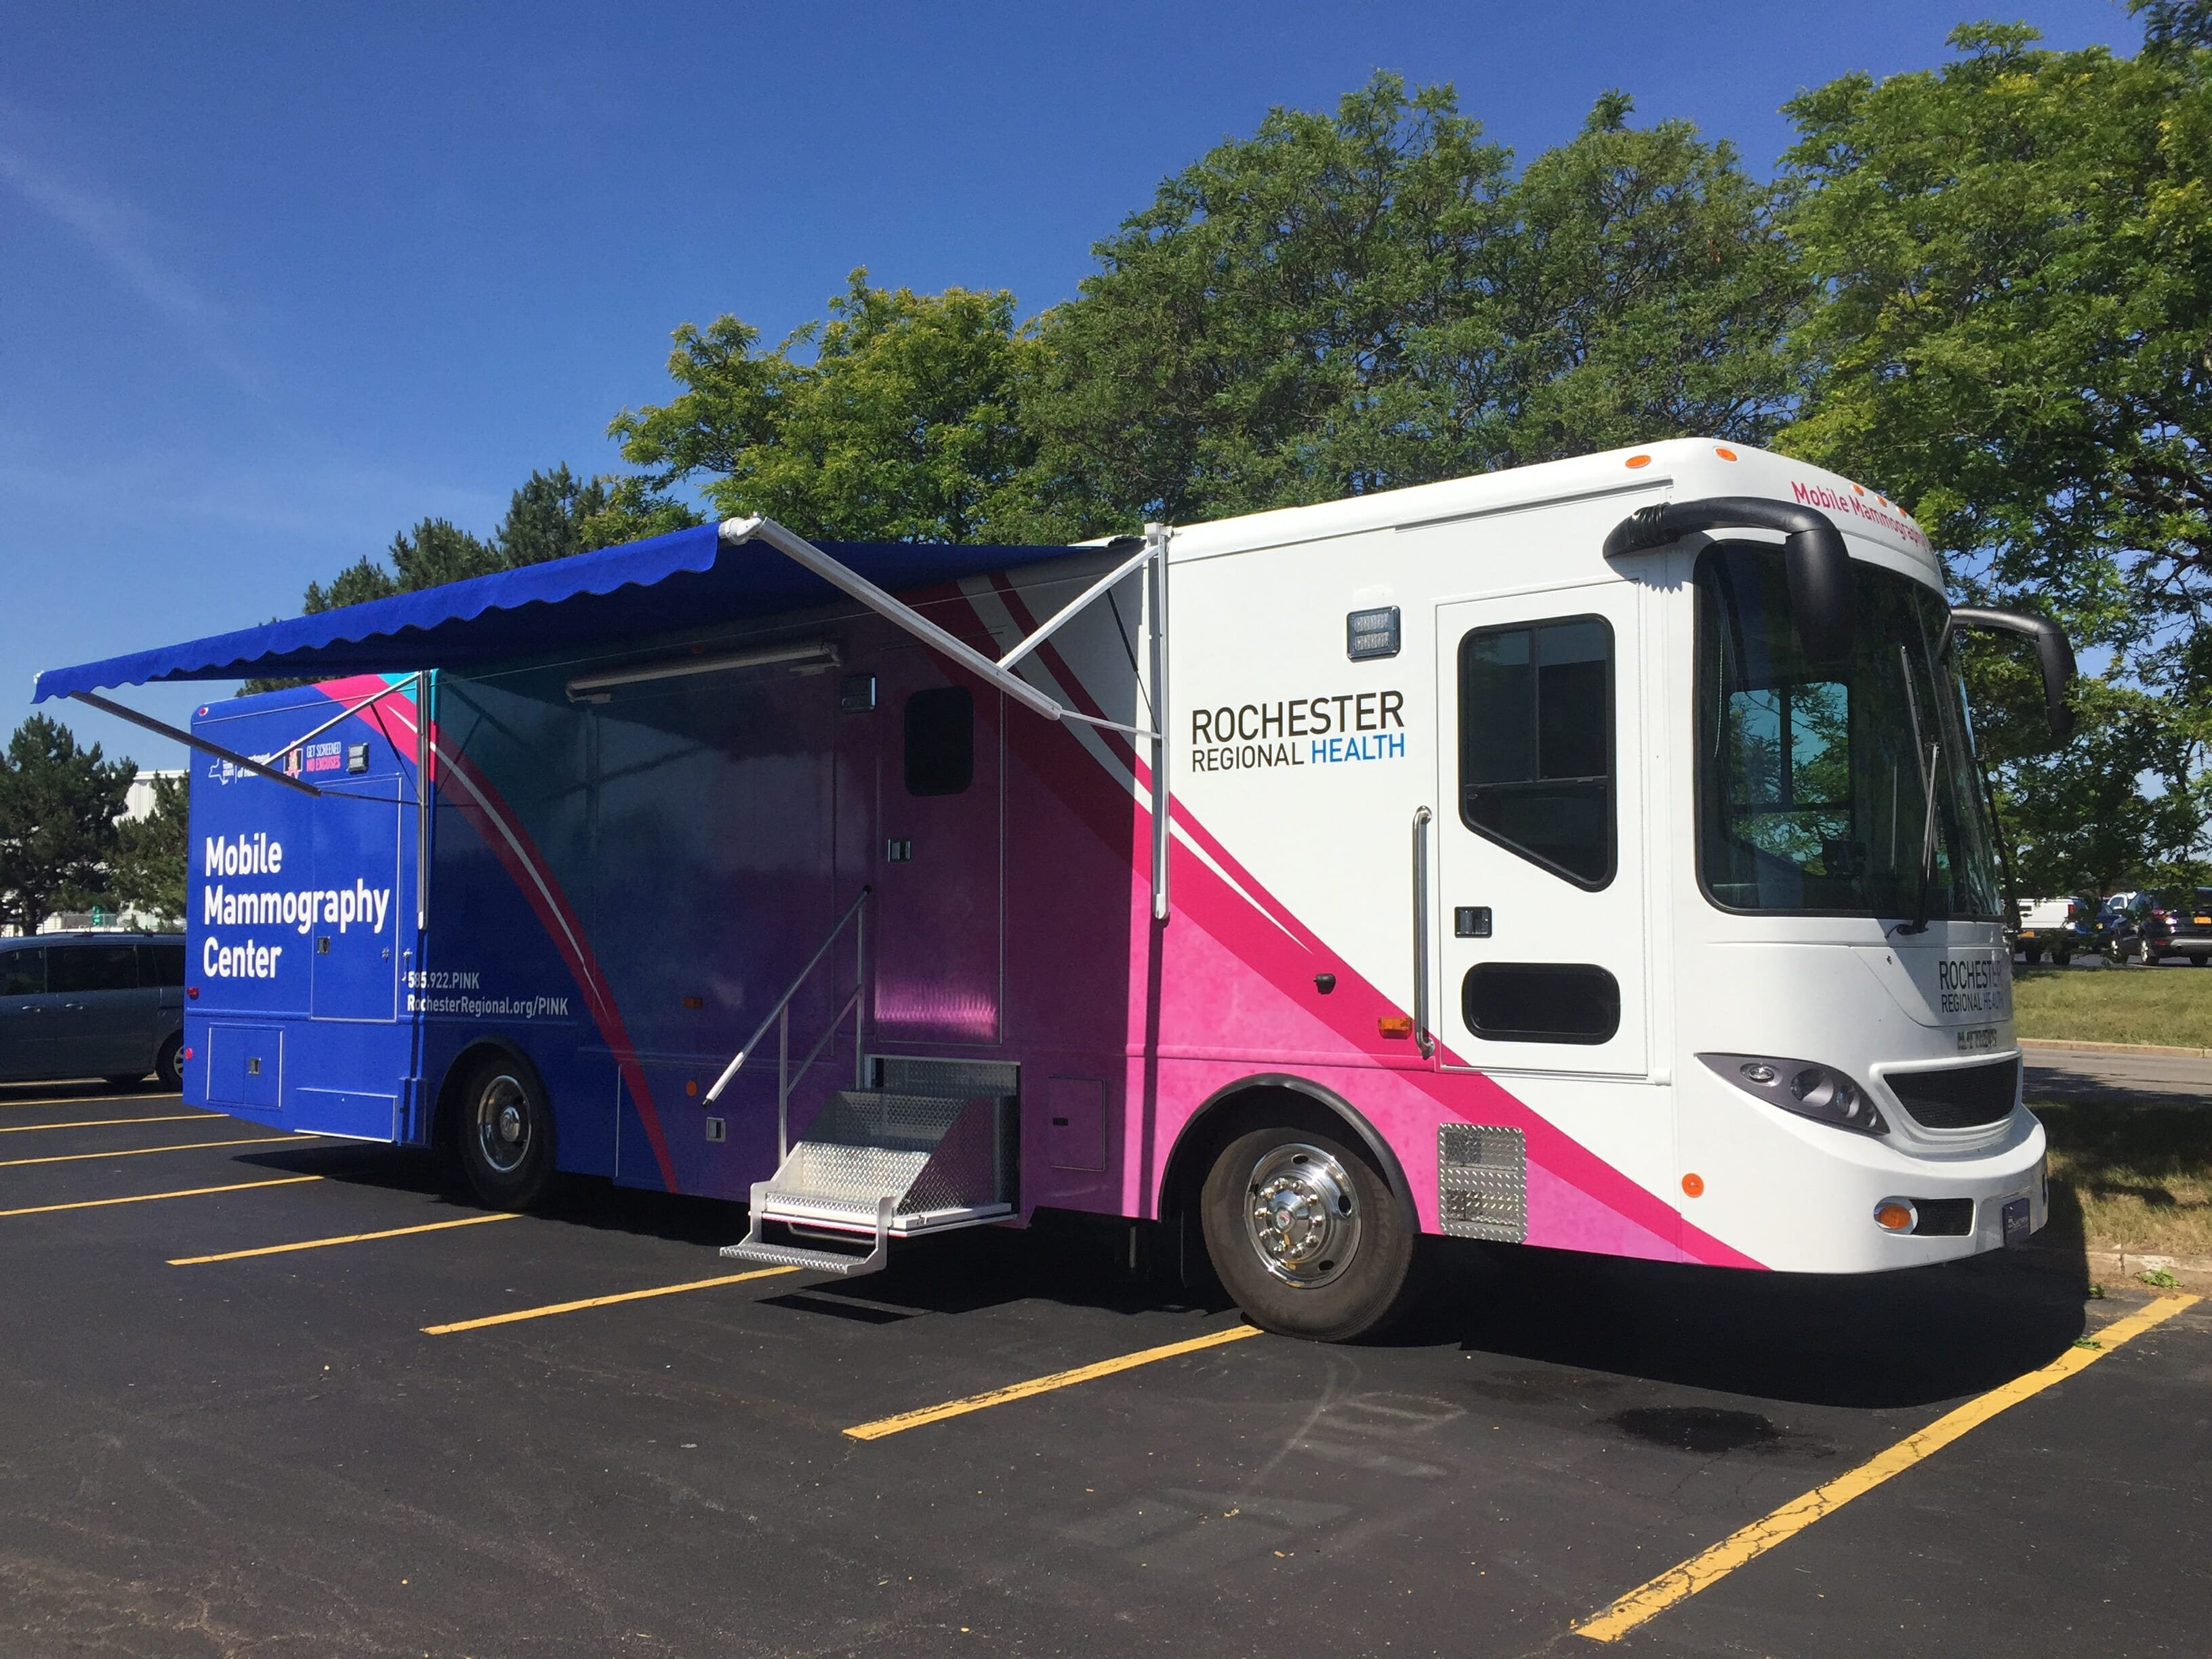 aycan store PACS install Rochester Regional Mobile mammography truck